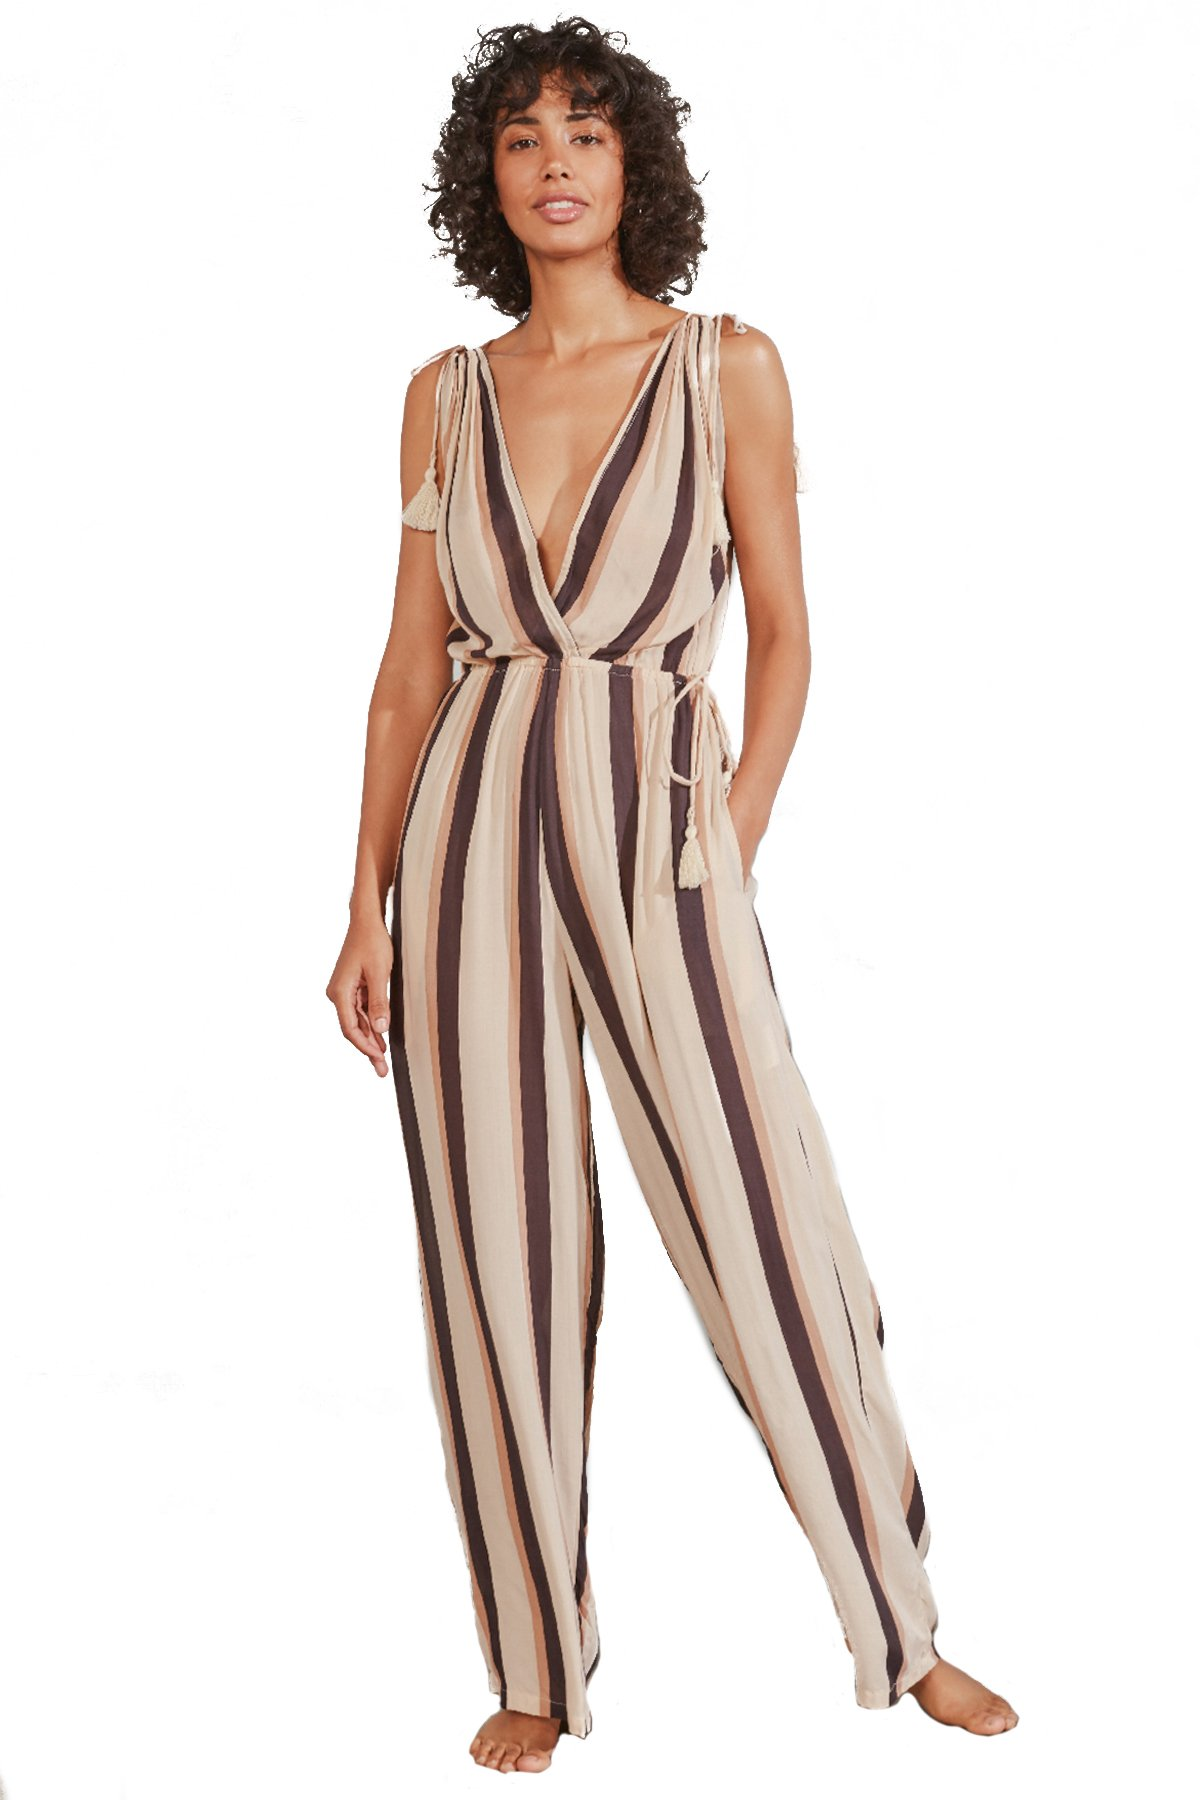 Taryn Vertical Stripe Jumpsuit - Smoke 1